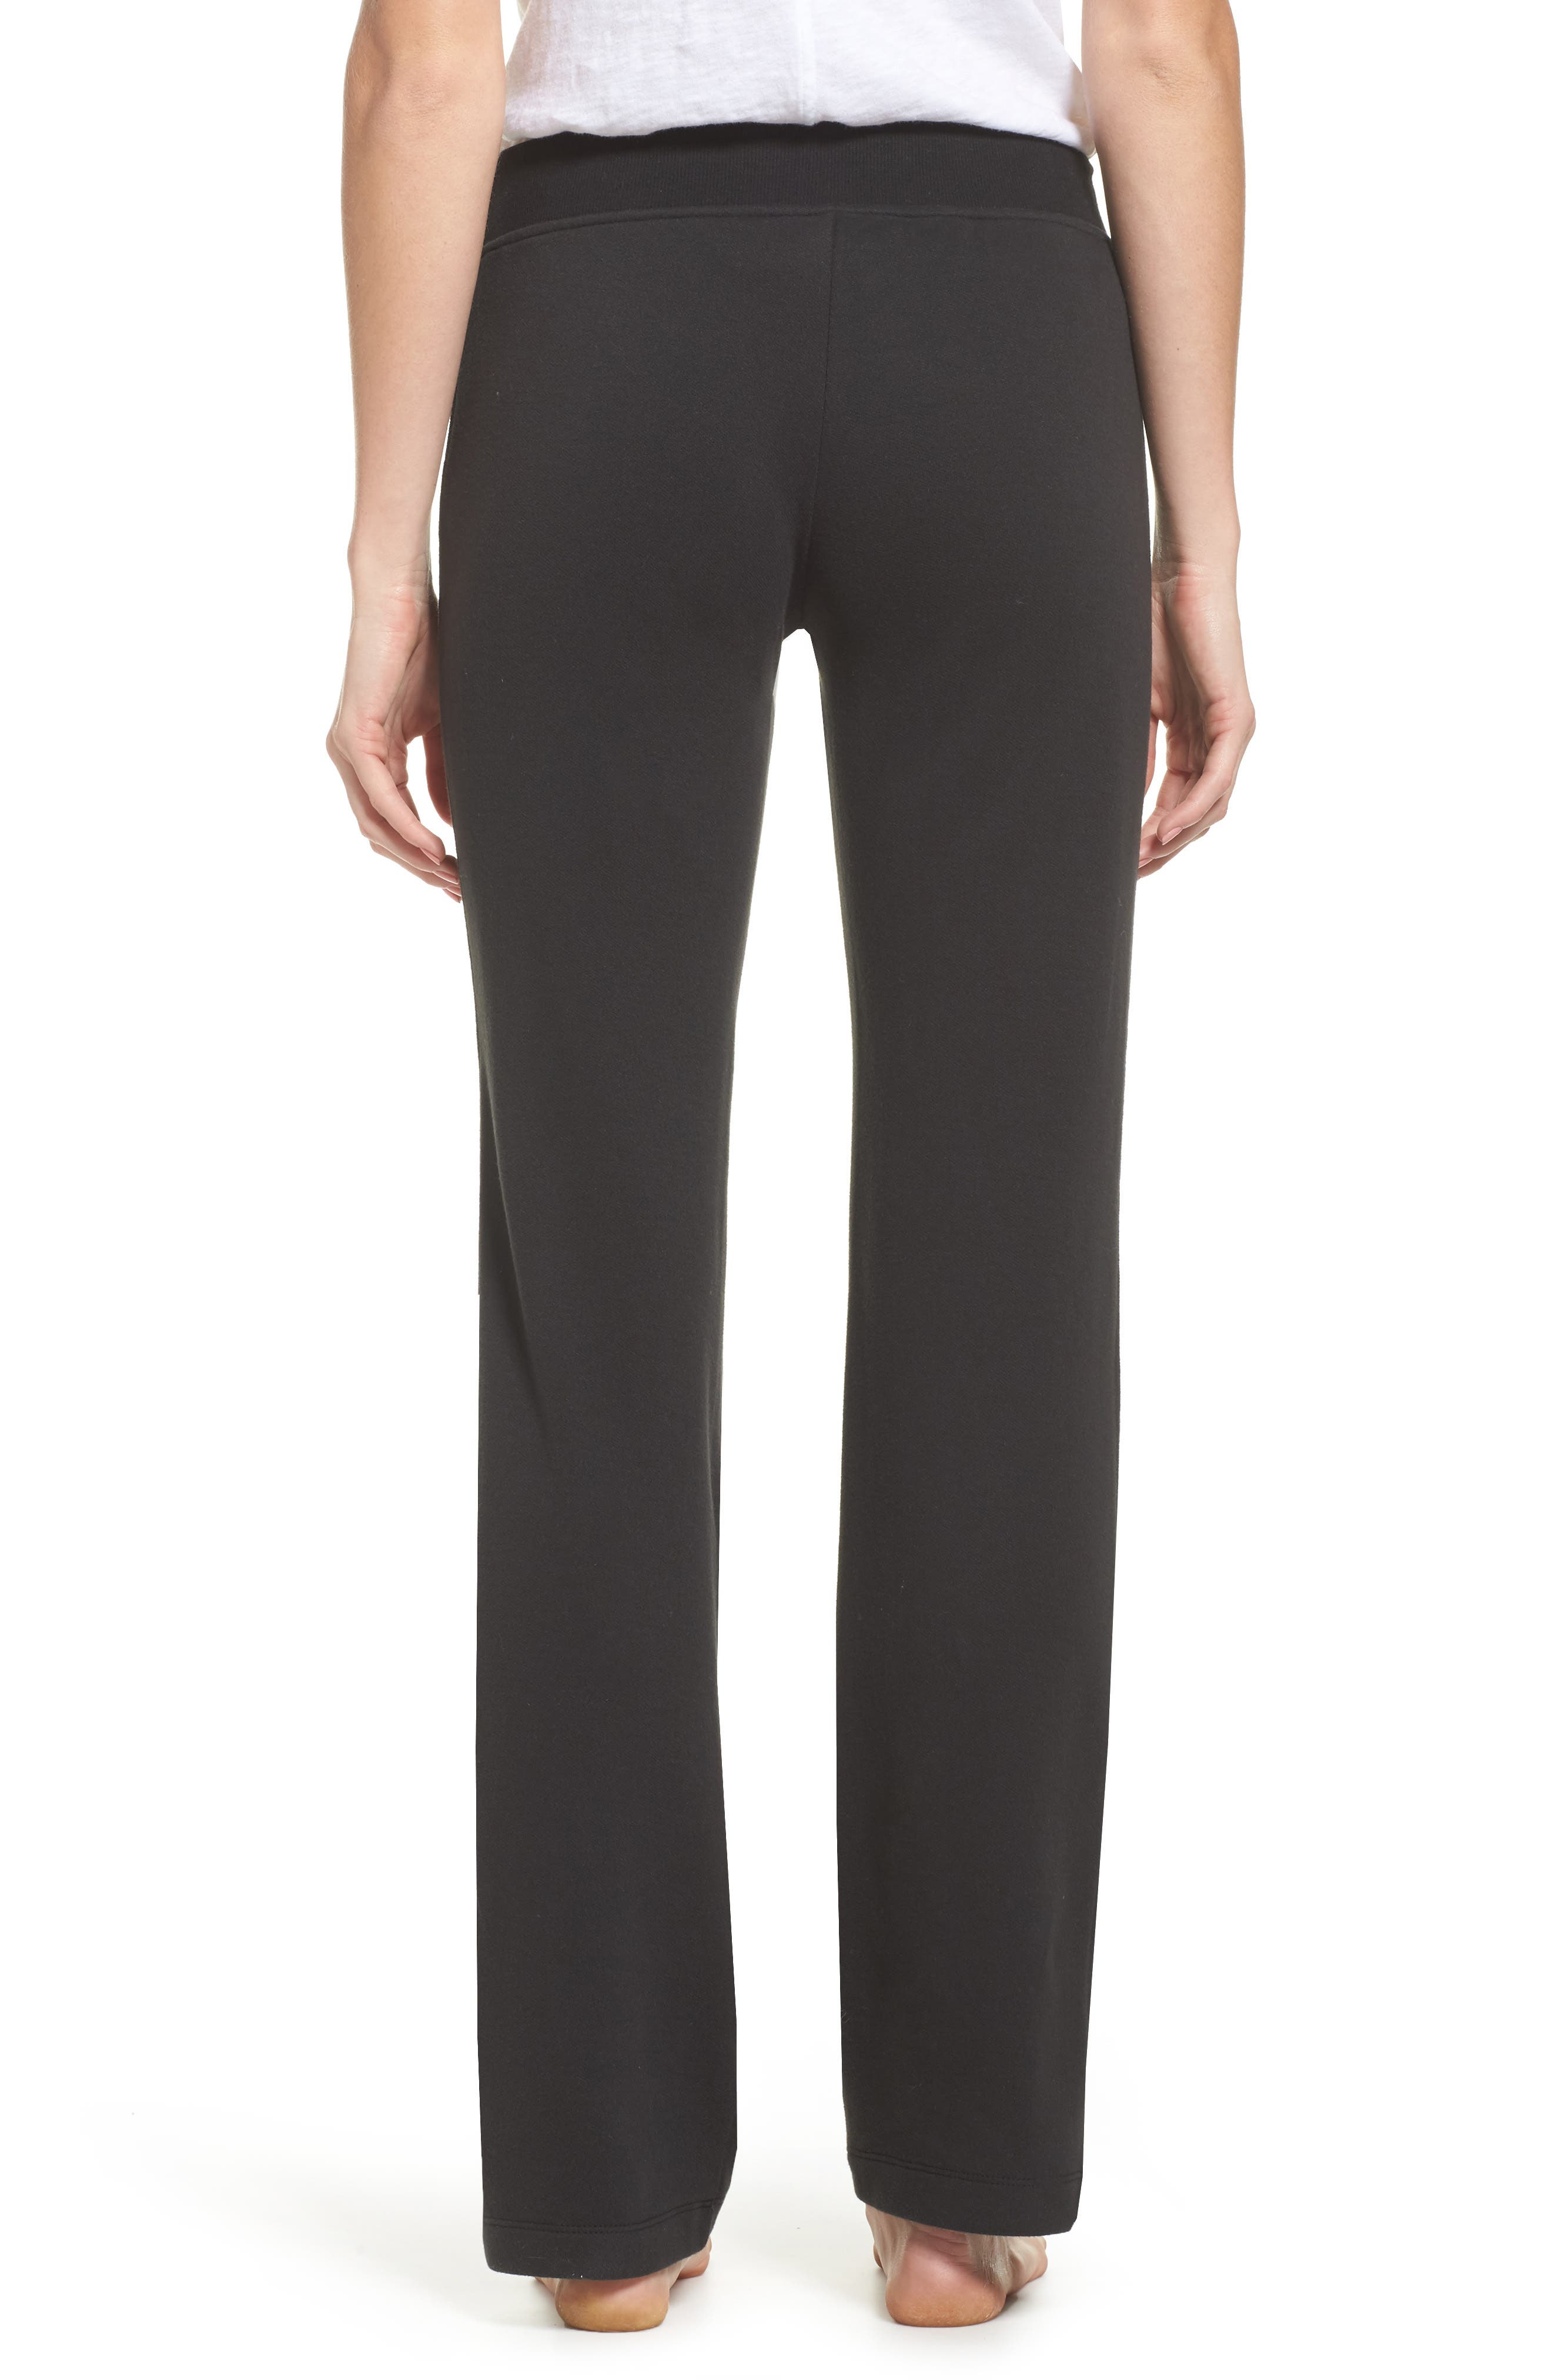 Penny Lounge Pants,                             Alternate thumbnail 2, color,                             BLACK